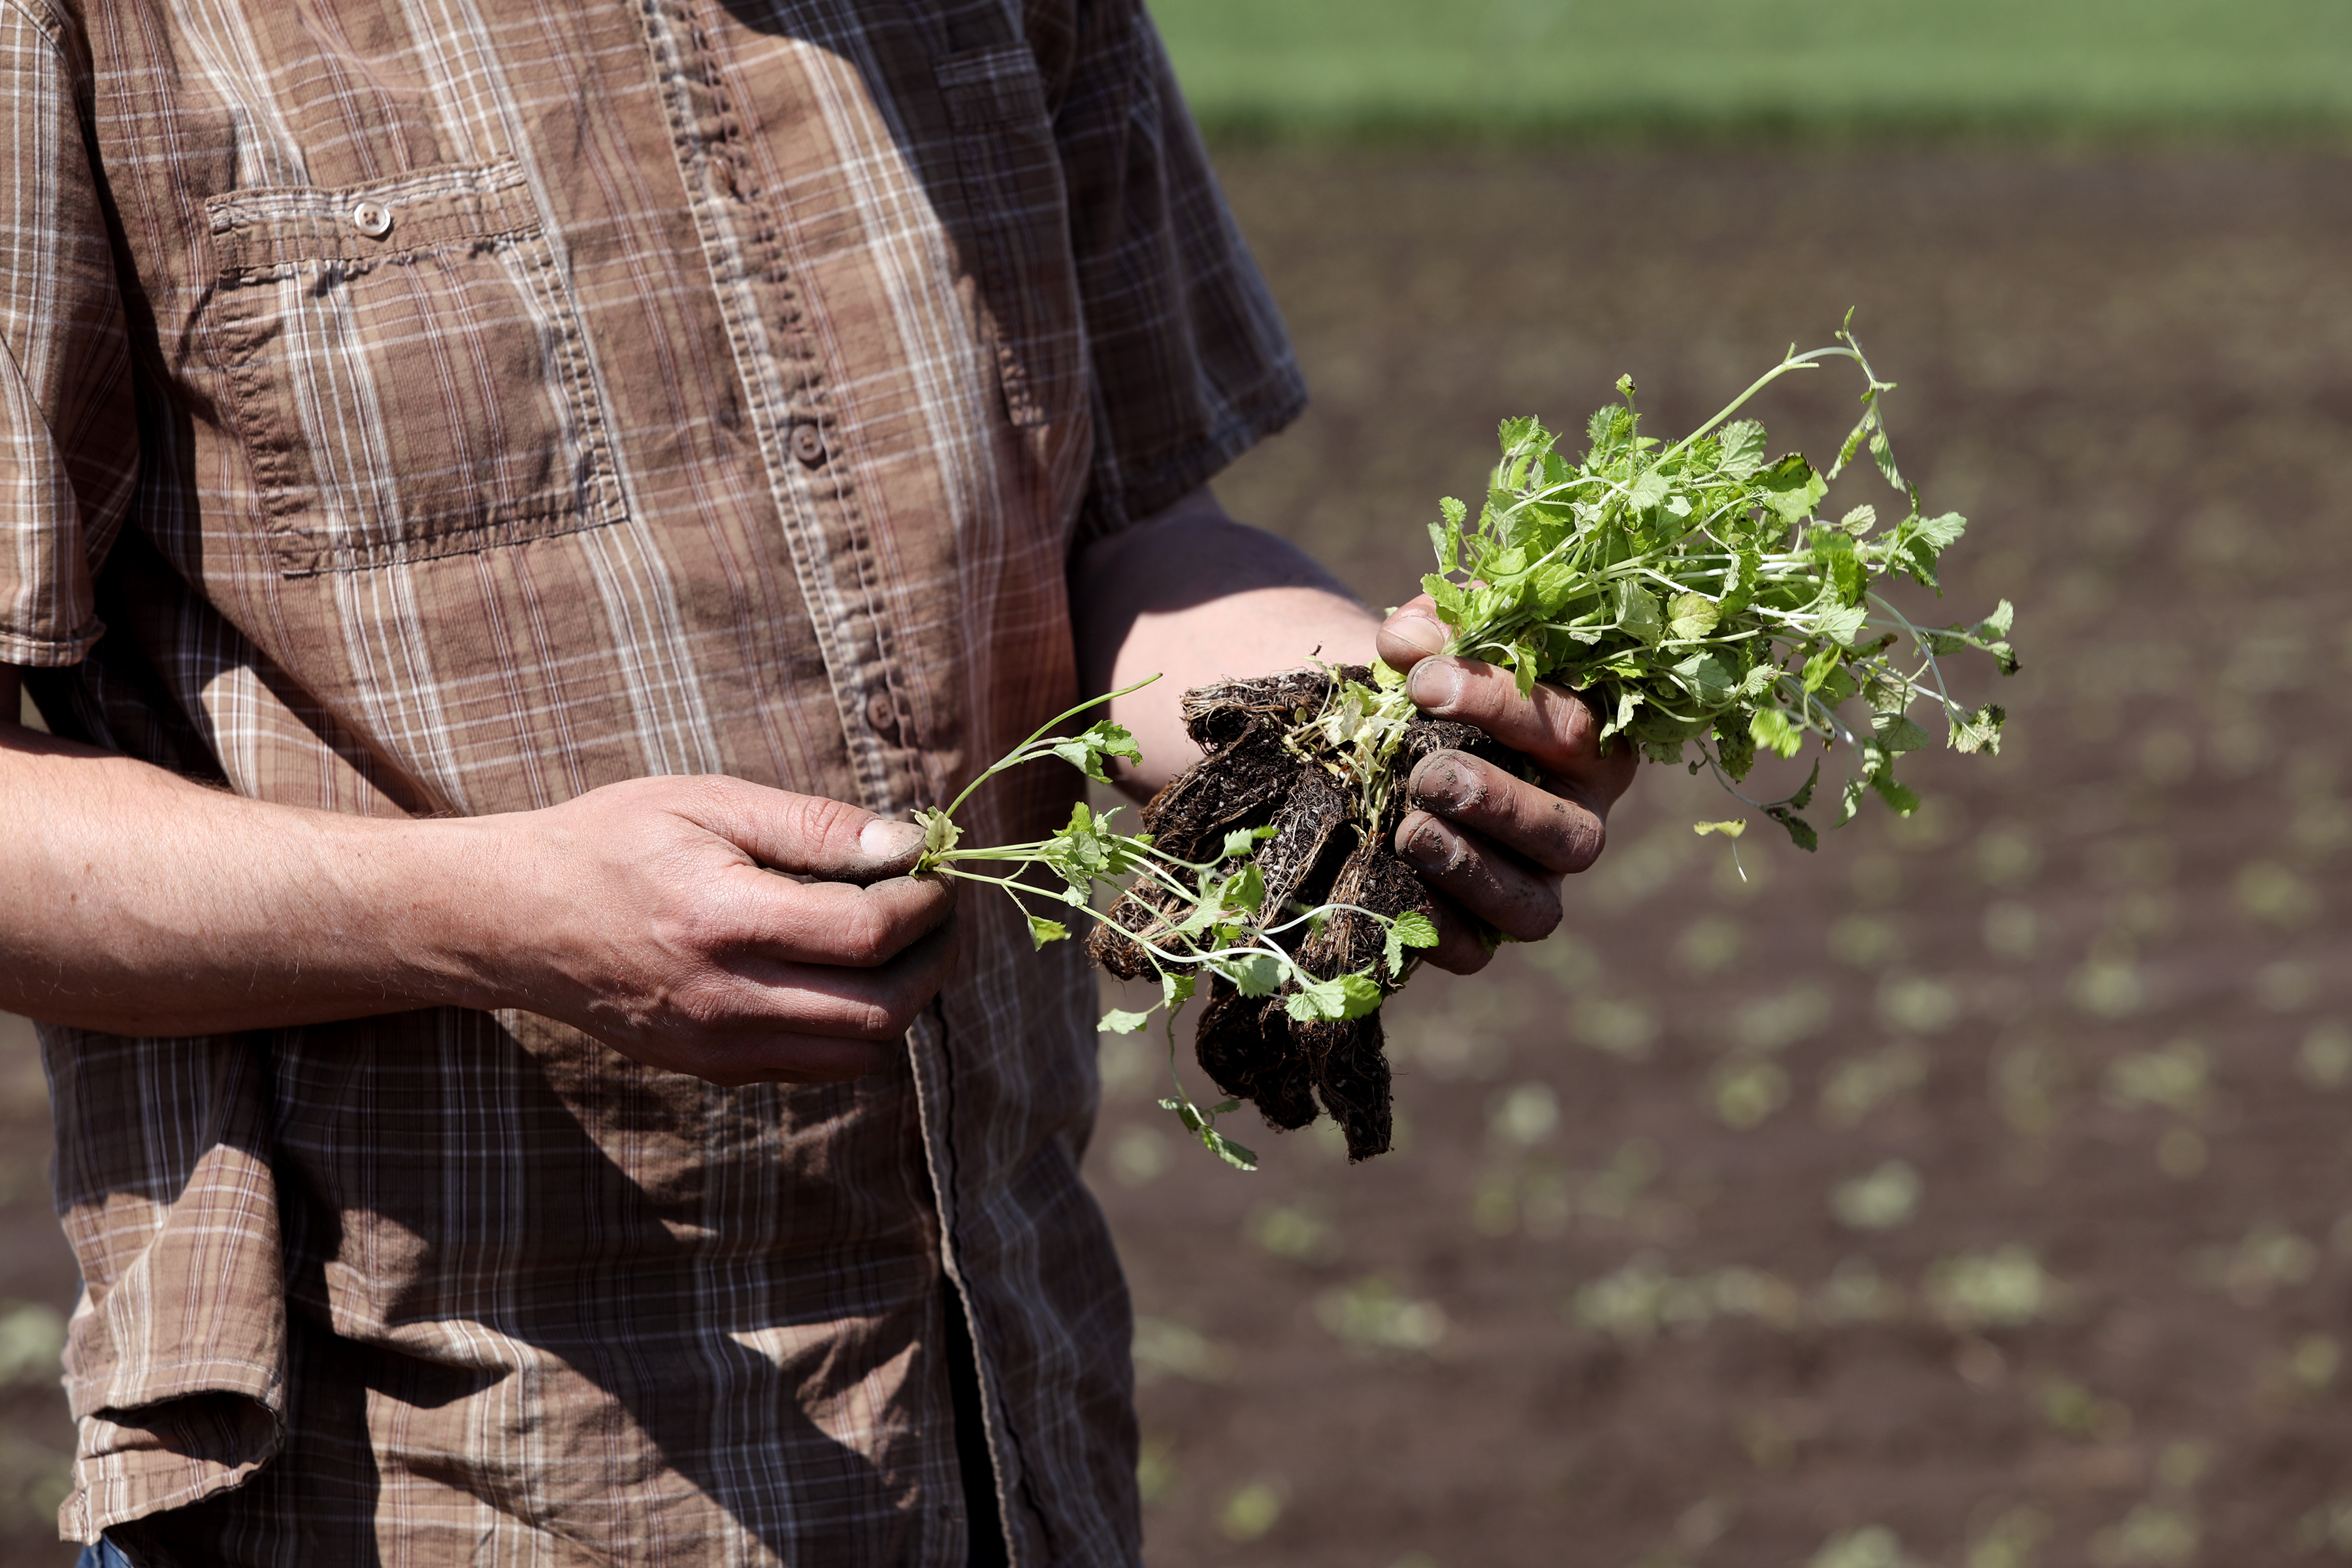 Rustic farm hands holding a living plant with soil still attached.